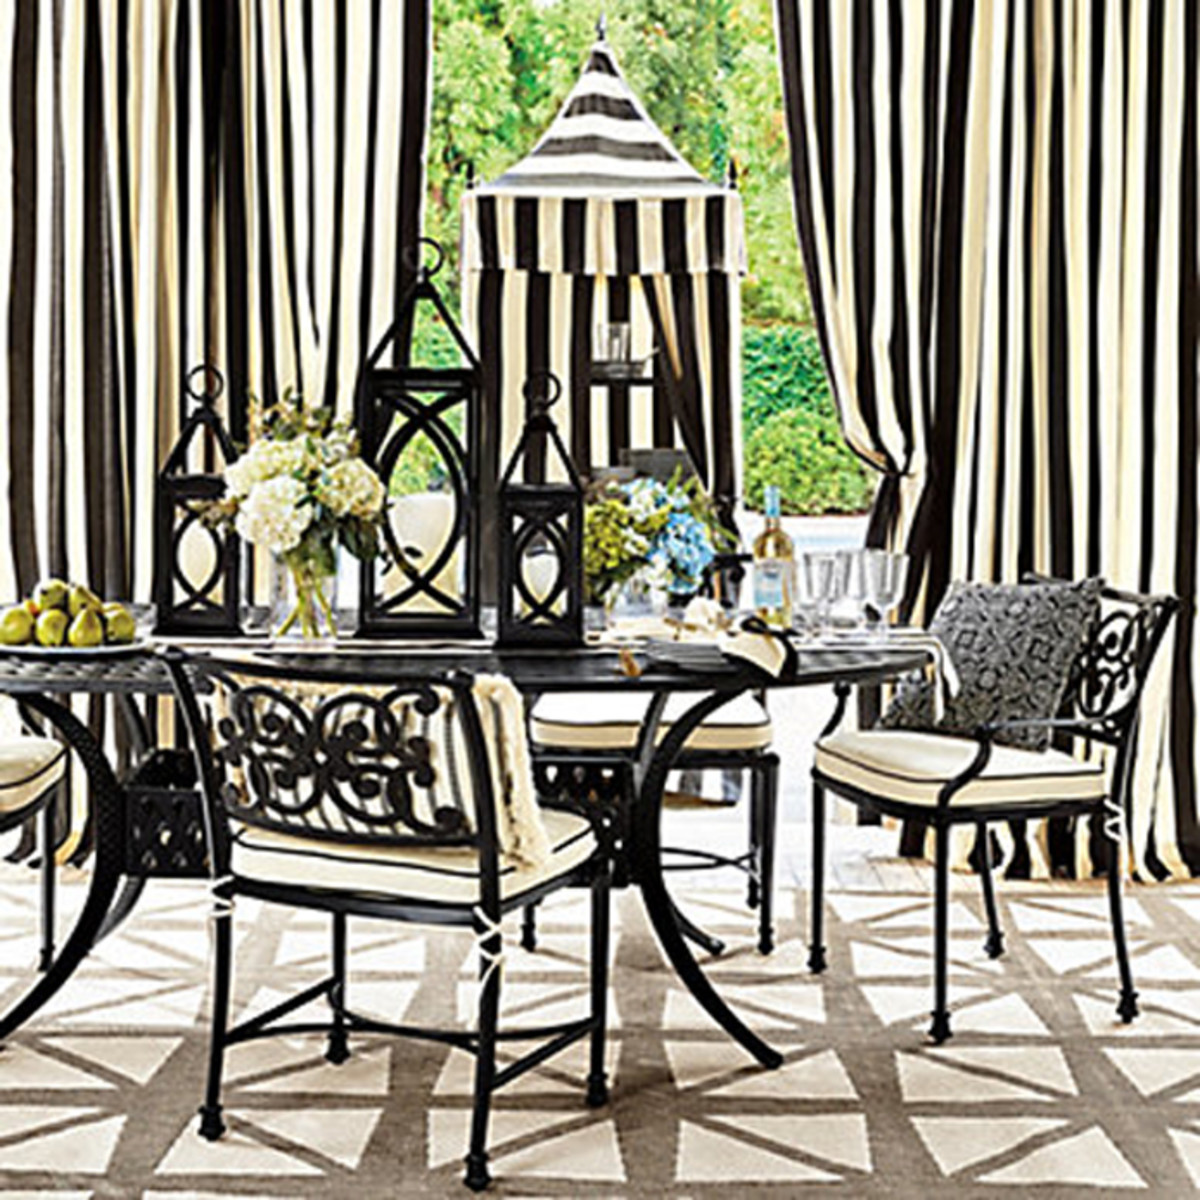 Black-and-white curtains add pizzazz  to your patio and pool area.